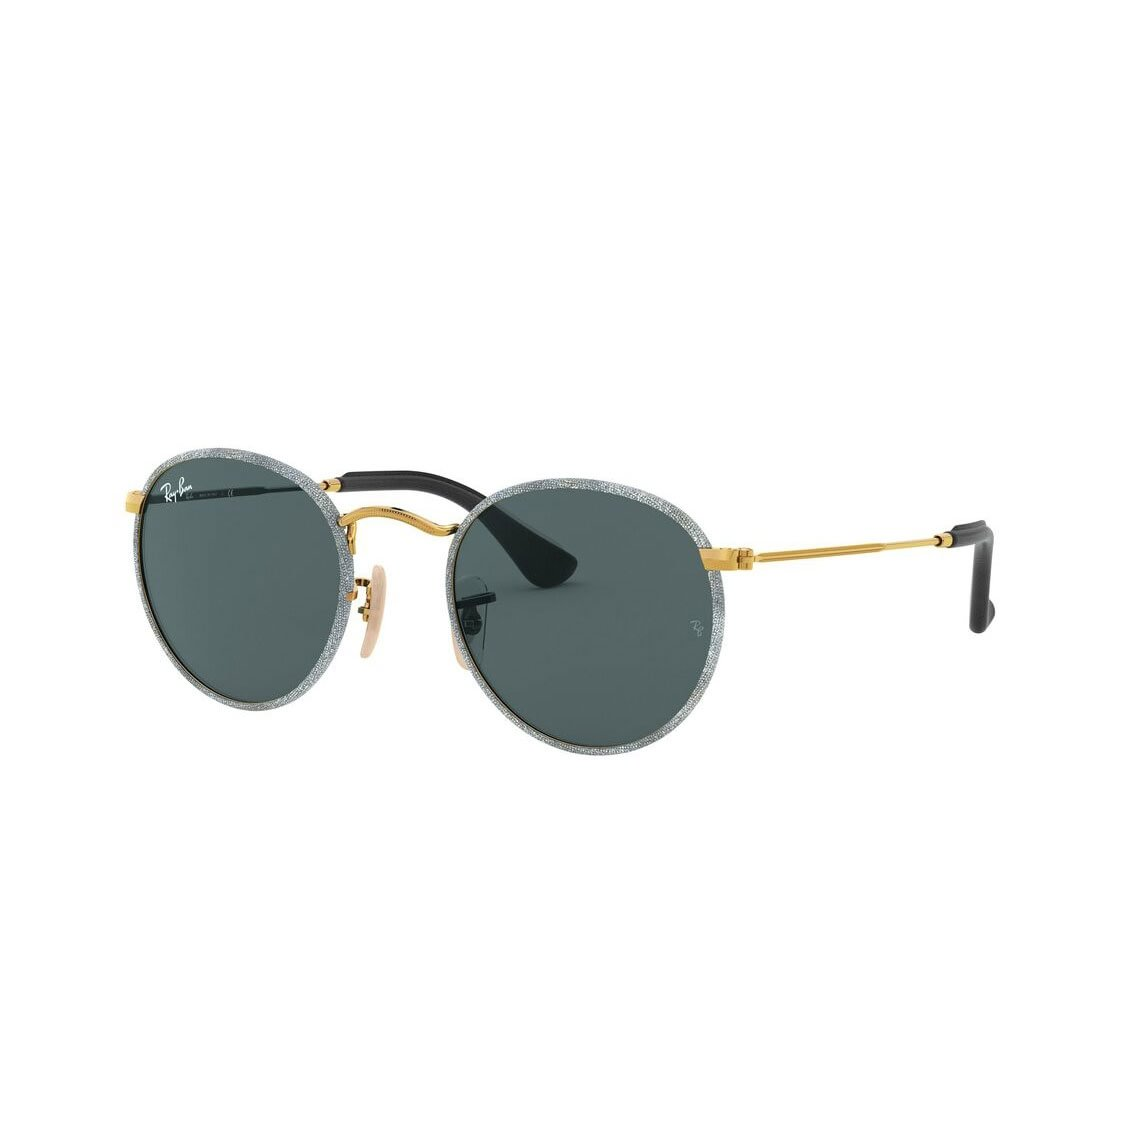 Ray-Ban Round Craft RB3475Q 9193R5 5021